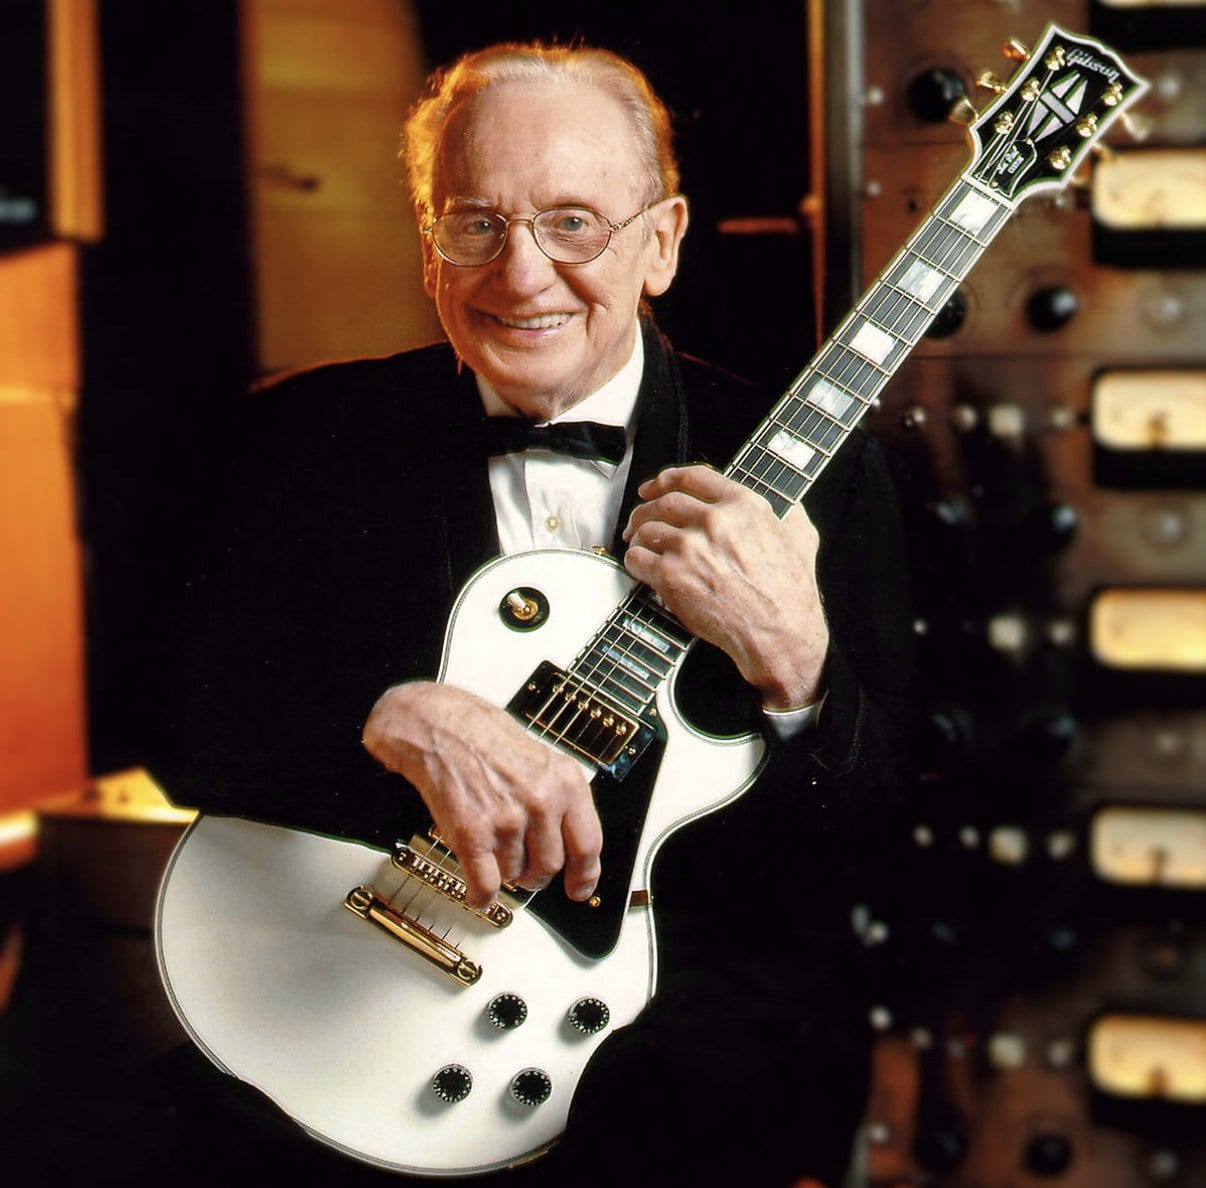 Les Paul with his one off 2002 White LP